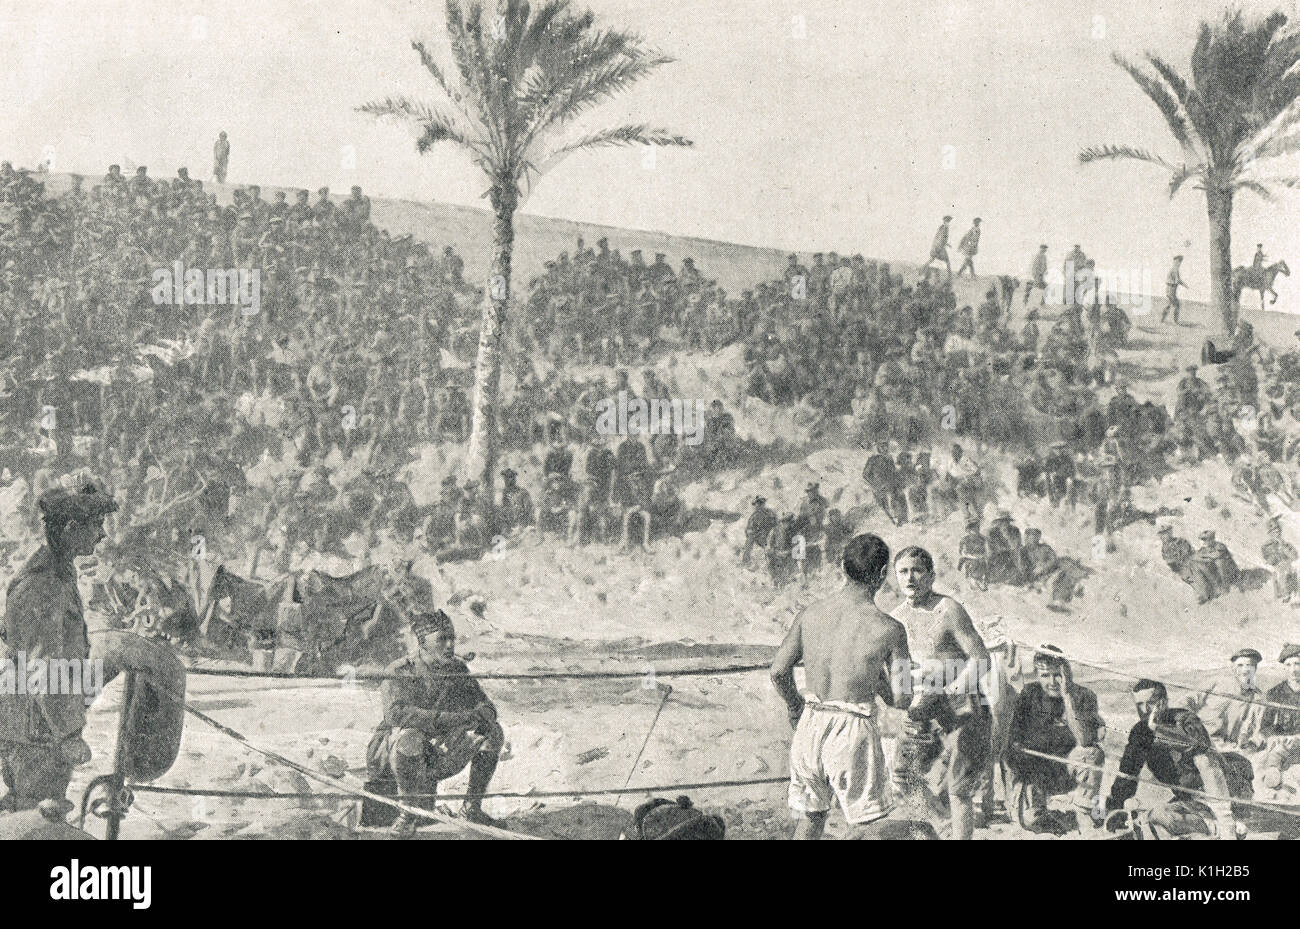 Boxing match, British camp in Egypt, WW1 - Stock Image